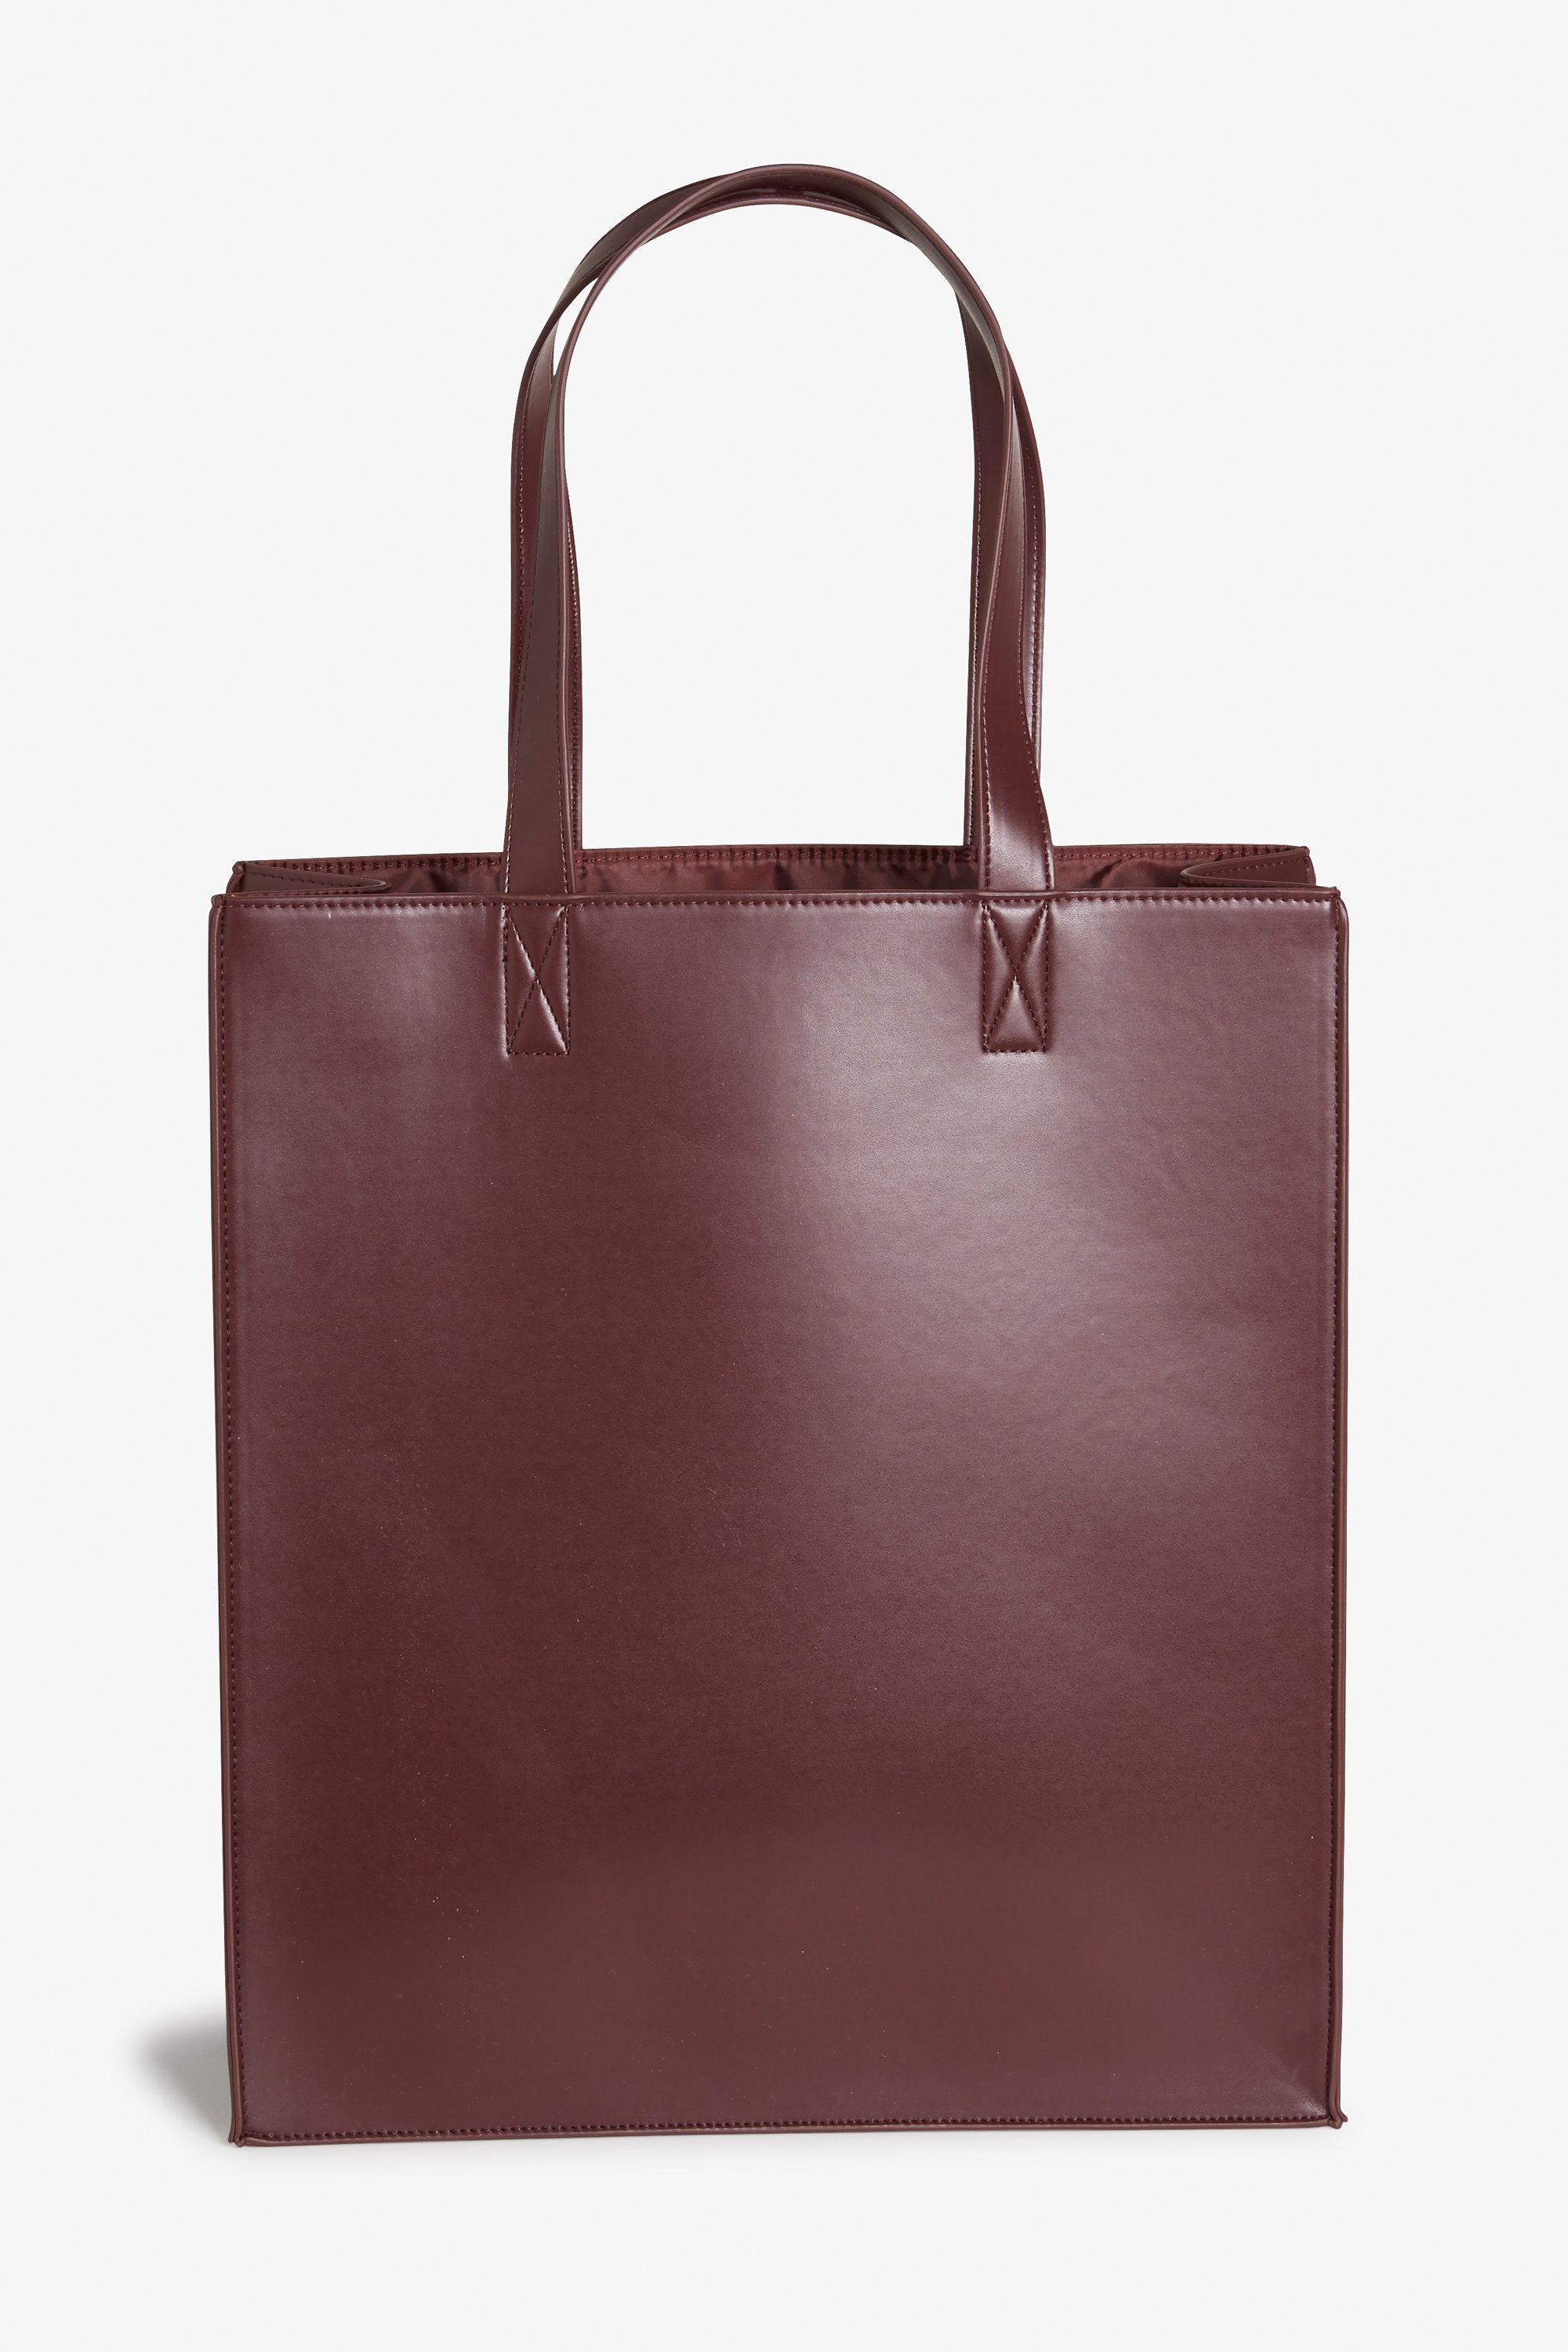 03d9da97f840a A minimalist faux leather tote bag. Single compartment with a pocket on the…